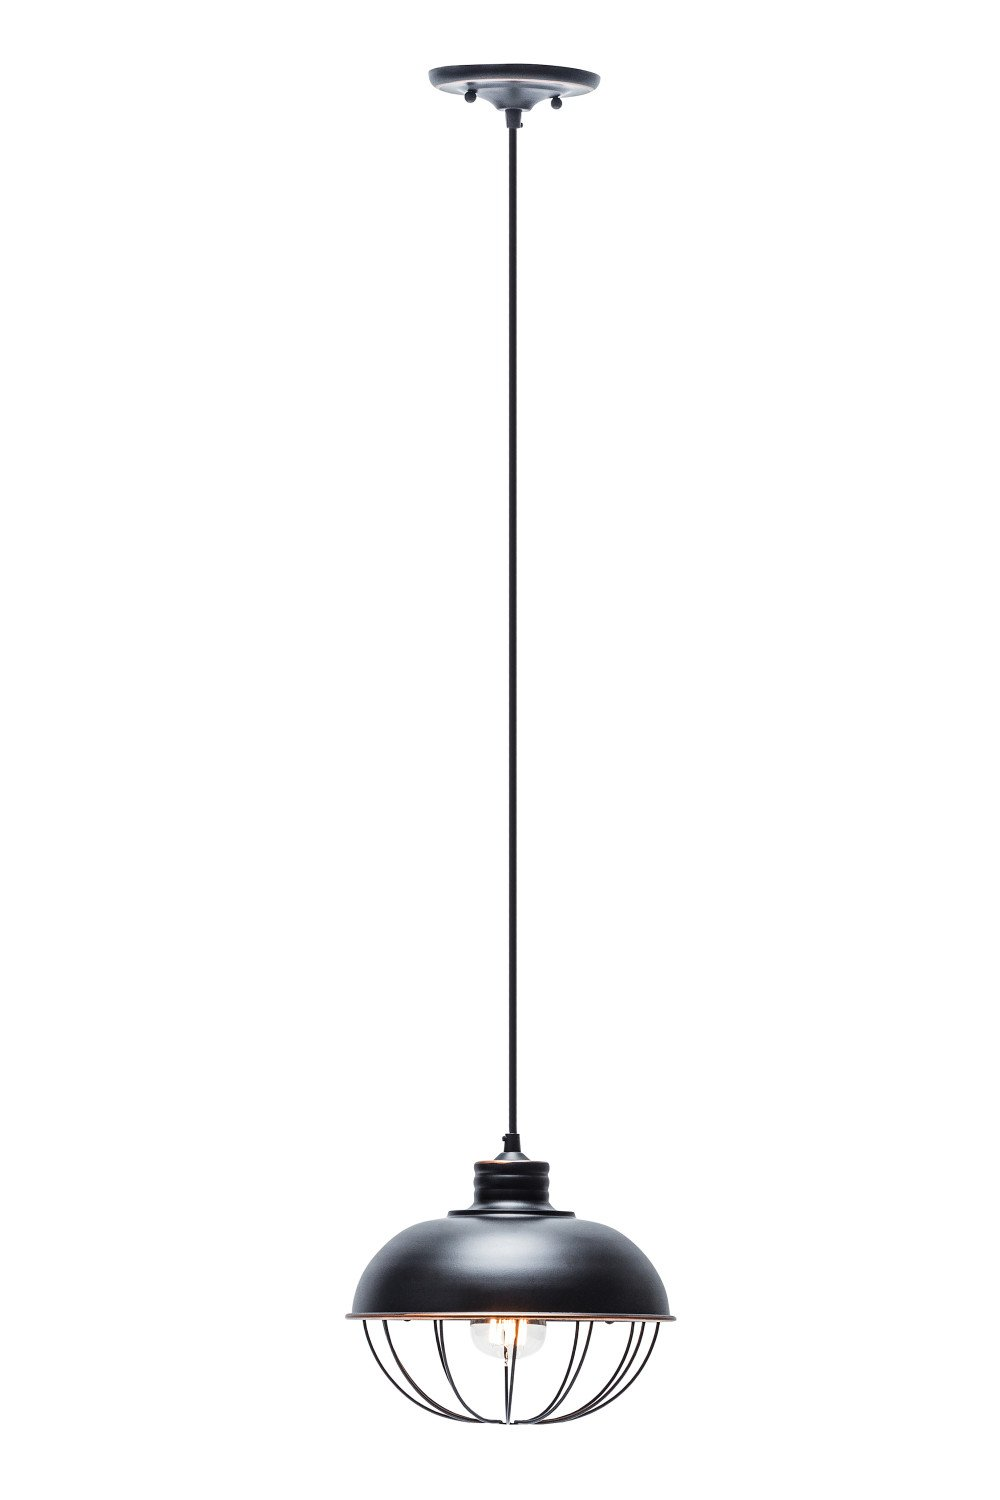 Globe Electric 10'' Vintage Half Cage Hanging Pendant, Oil Rubbed Bronze Finish, Black Cord, 1x A19 60W Bulb (sold separately), 64833